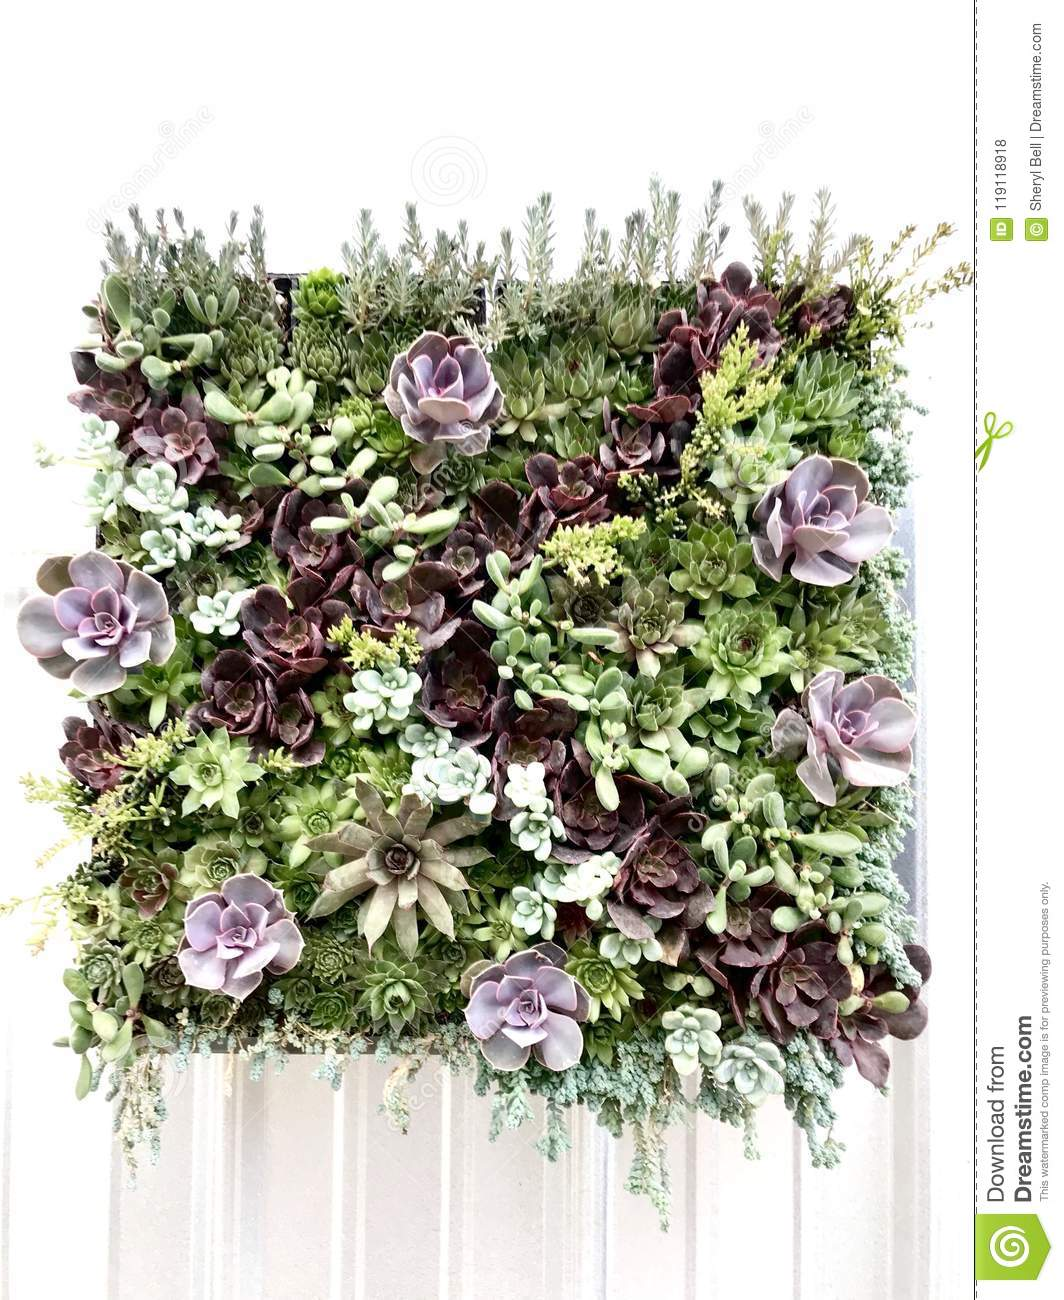 Download Living Wall Of Succulents Stock Photo. Image Of Wall   119118918